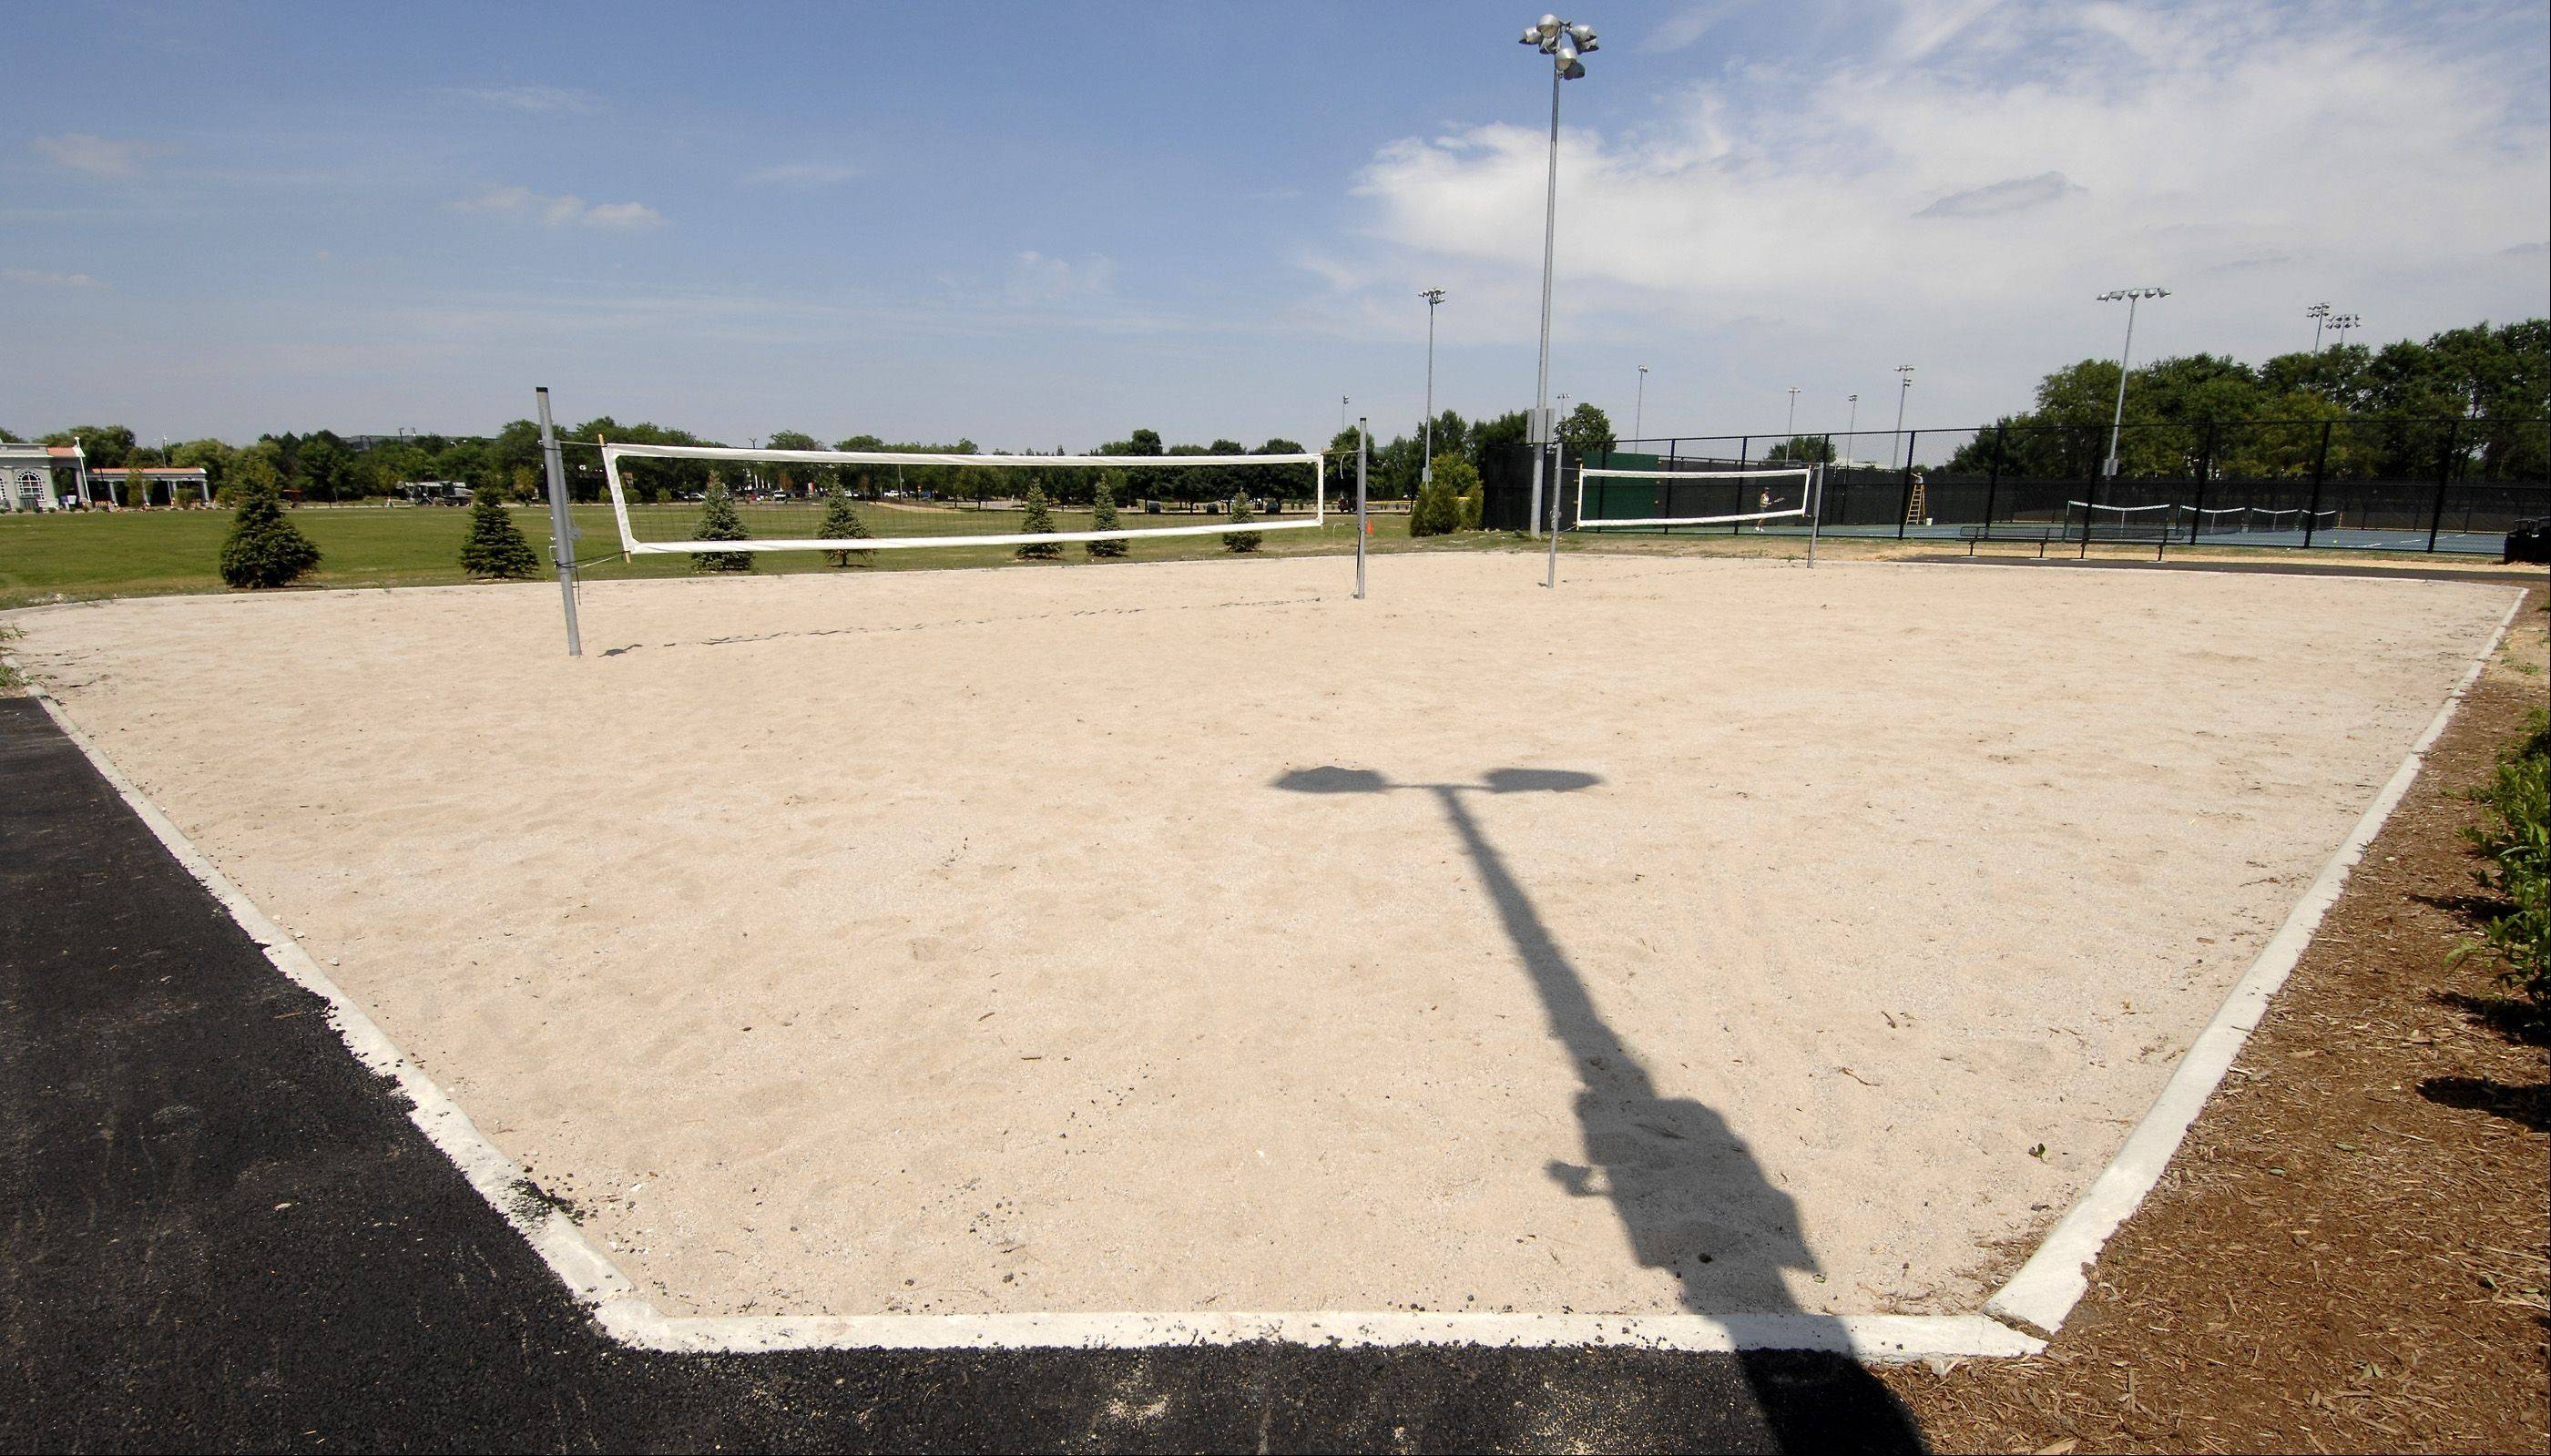 Lighted beach volleyball courts are part of the Nike Sports Complex expansion in Naperville.